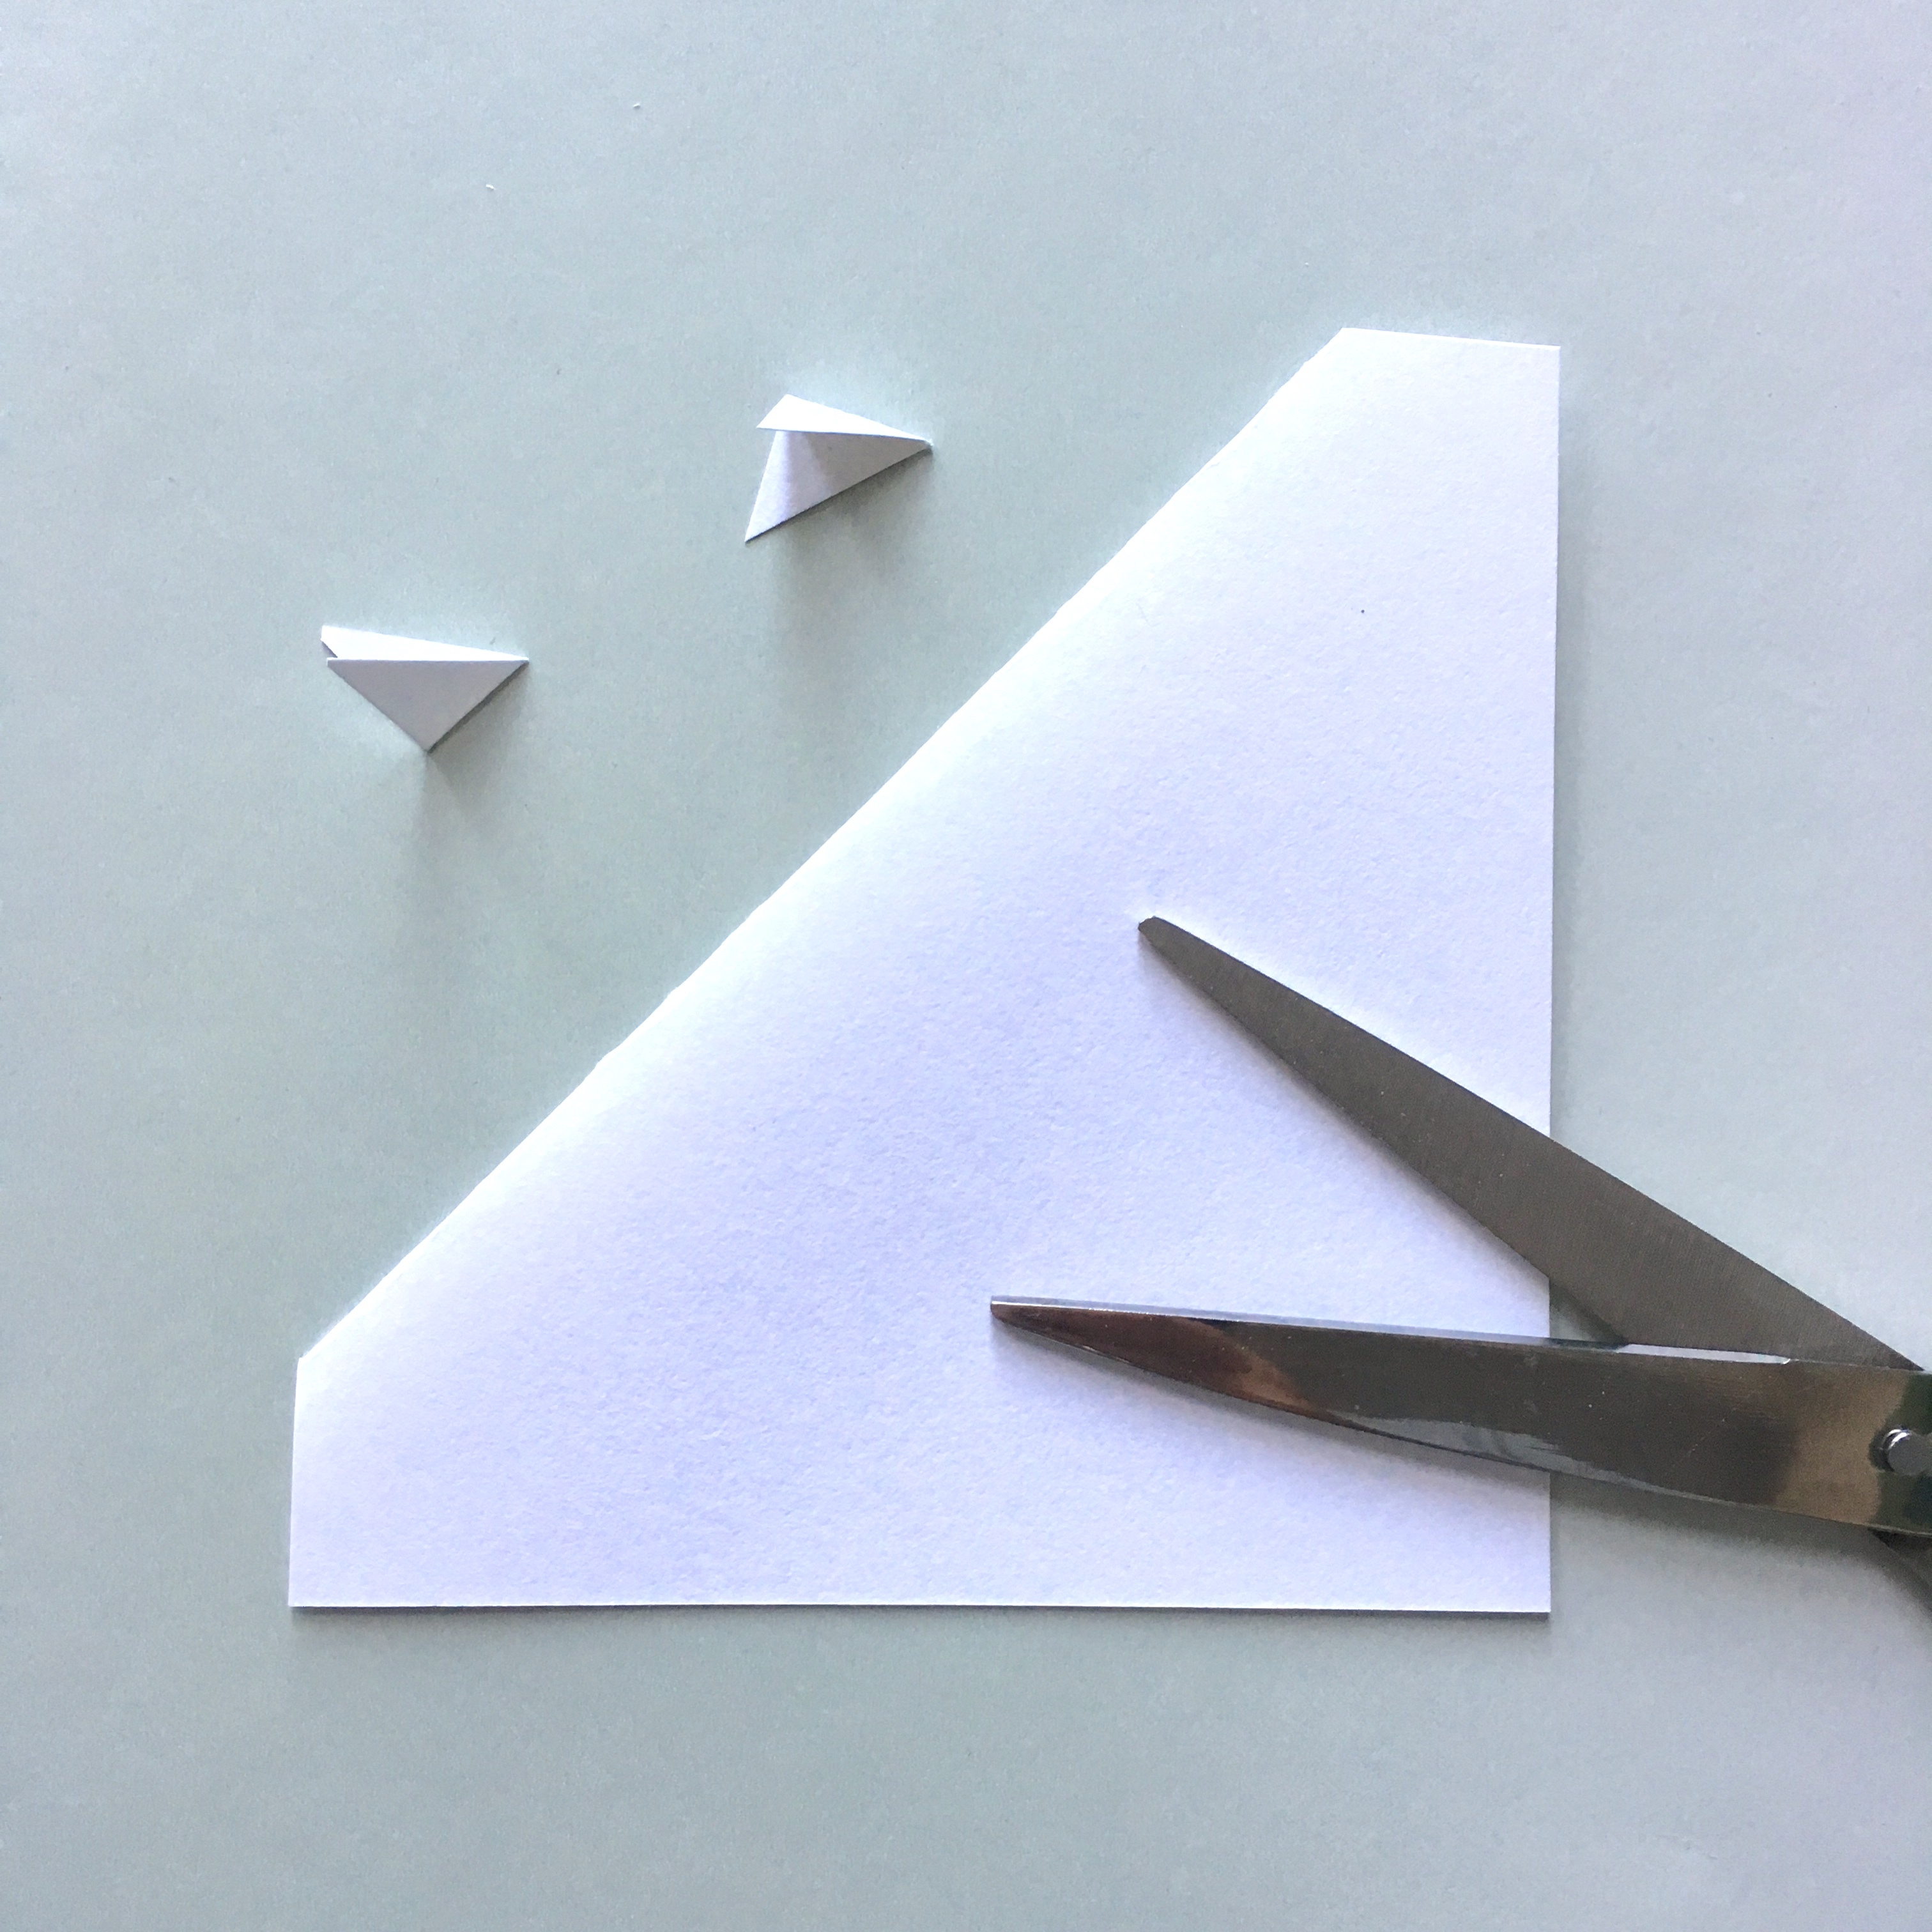 shaping the triangle pocket bookmark